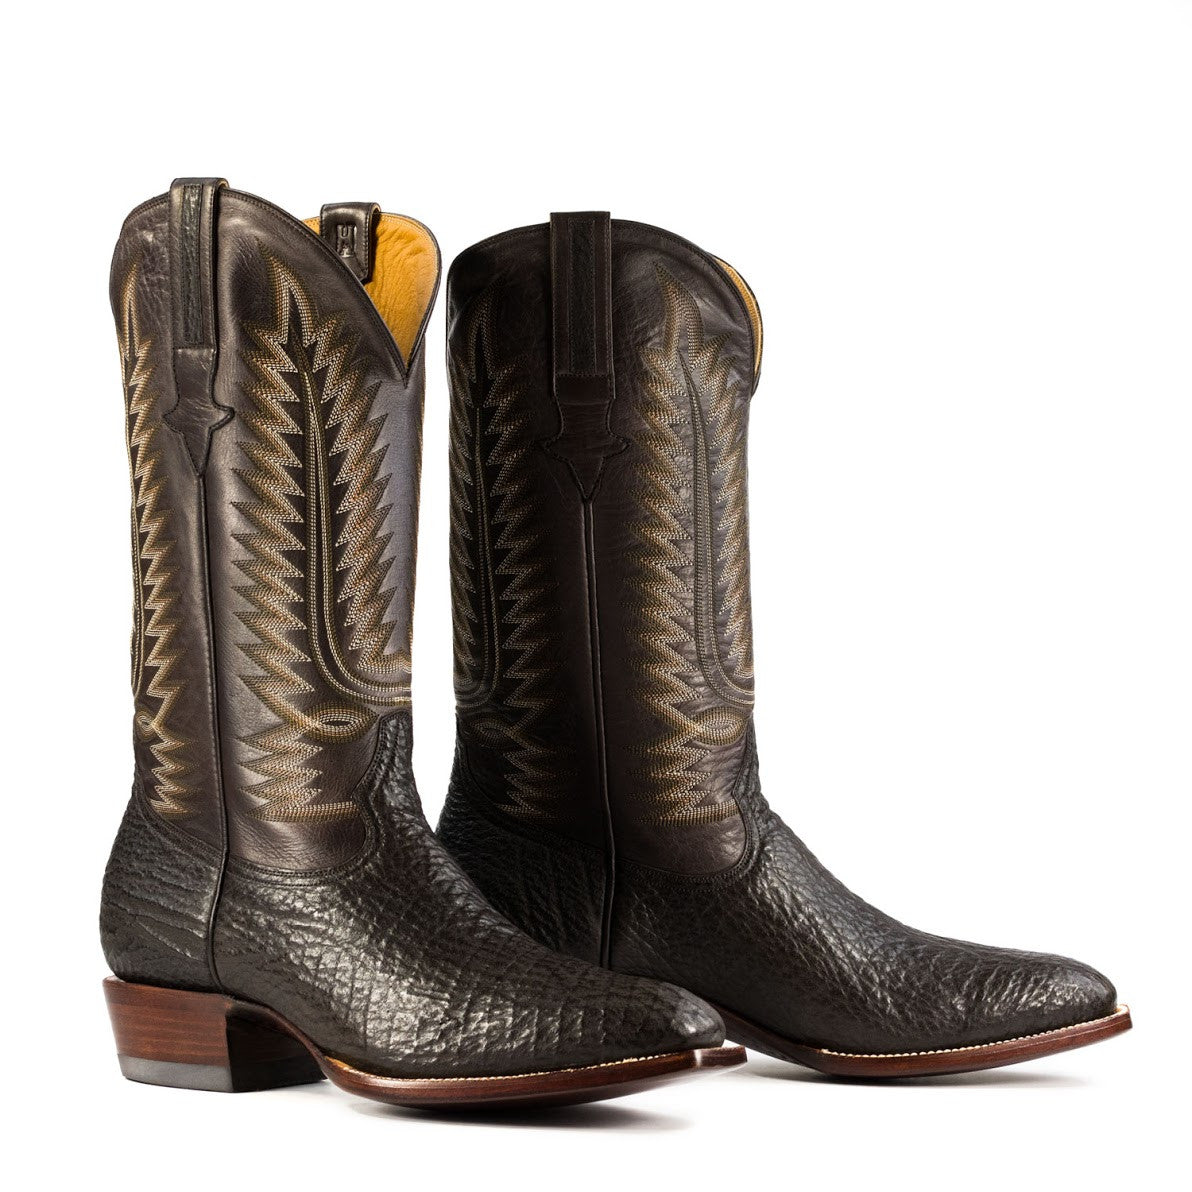 47379637e71 Shark Boot in Brown - French Toe - Heritage Boot